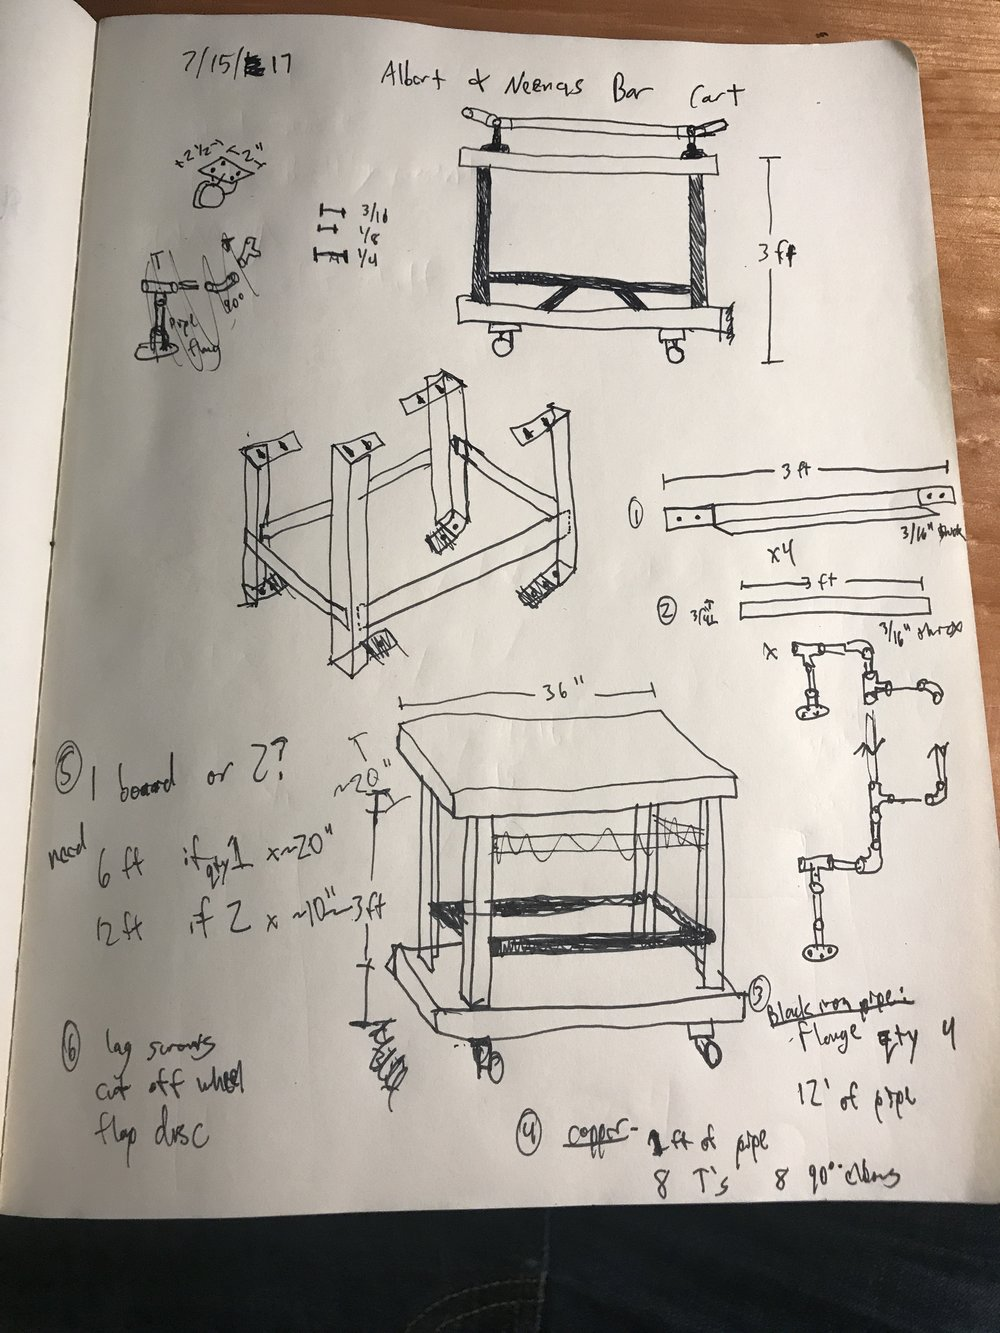 Rough plan for the bar cart.